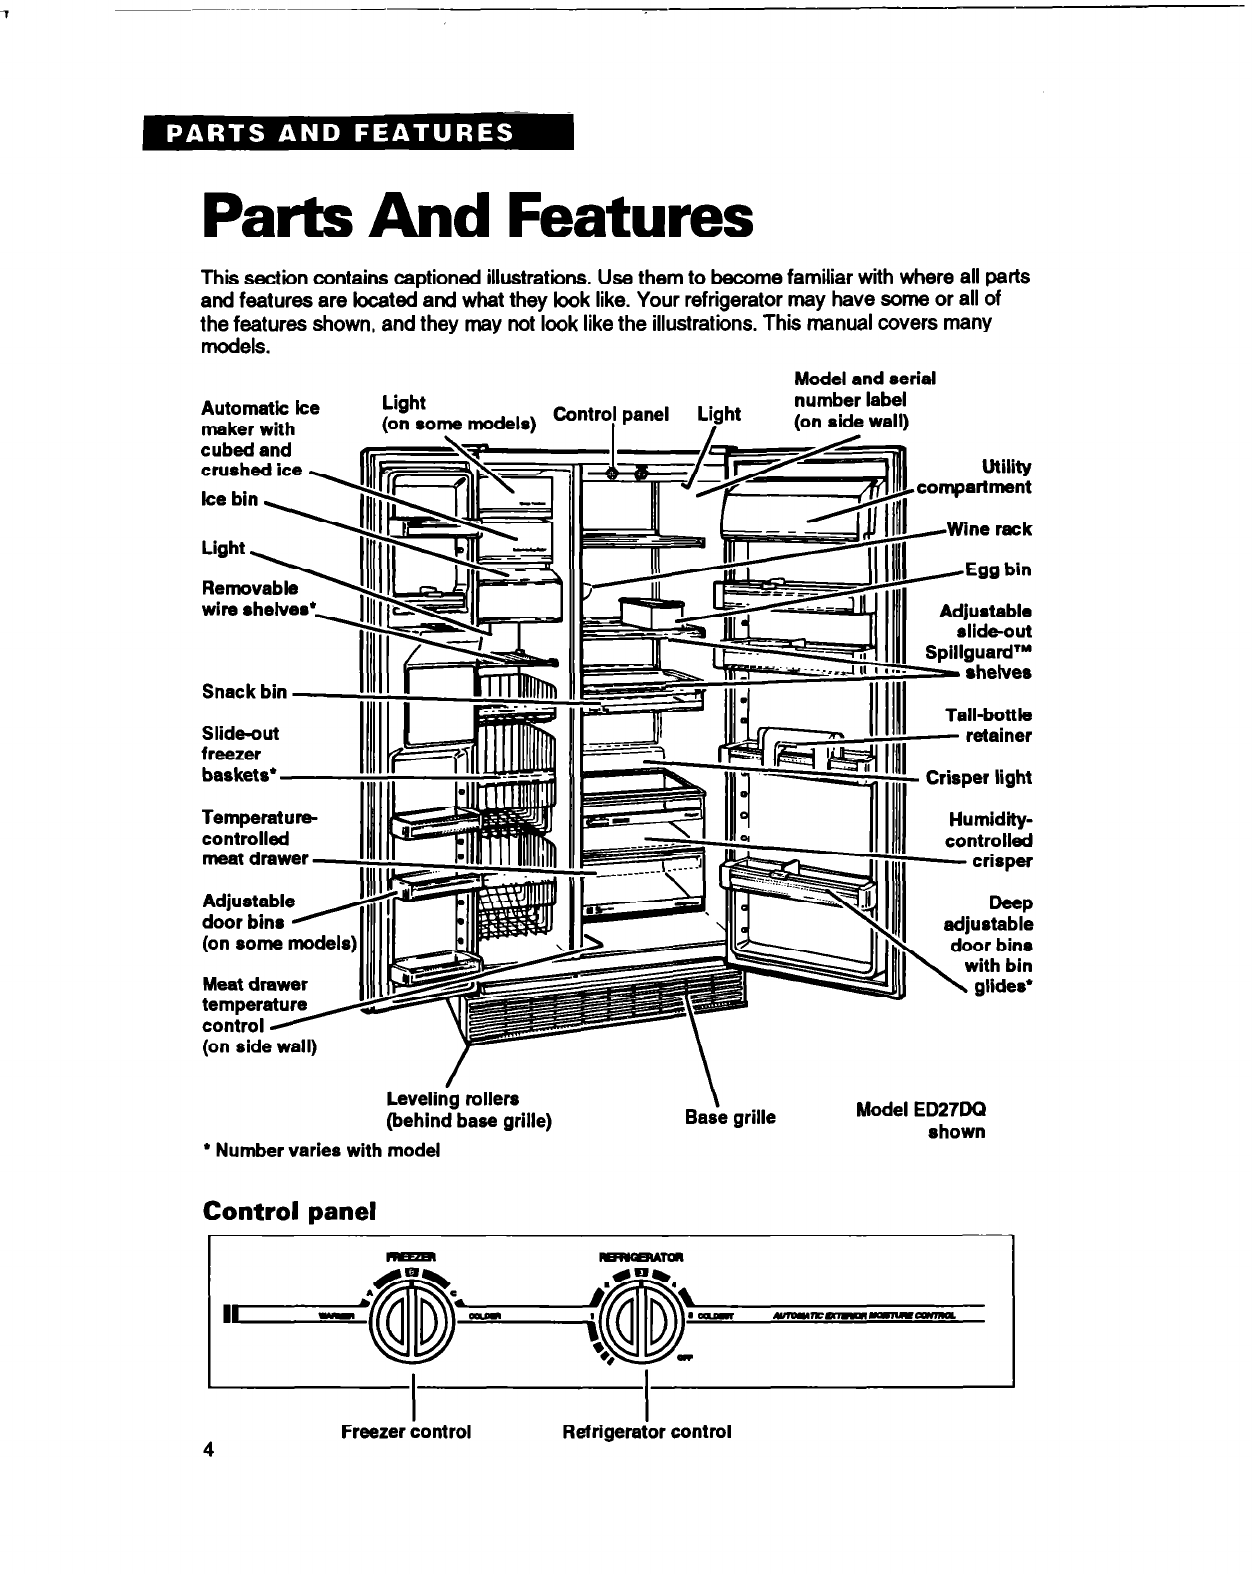 page 4 of whirlpool refrigerator ed27dq user guide Whirlpool Refrigerator Parts Diagram Whirlpool Refrigerator Parts Diagram